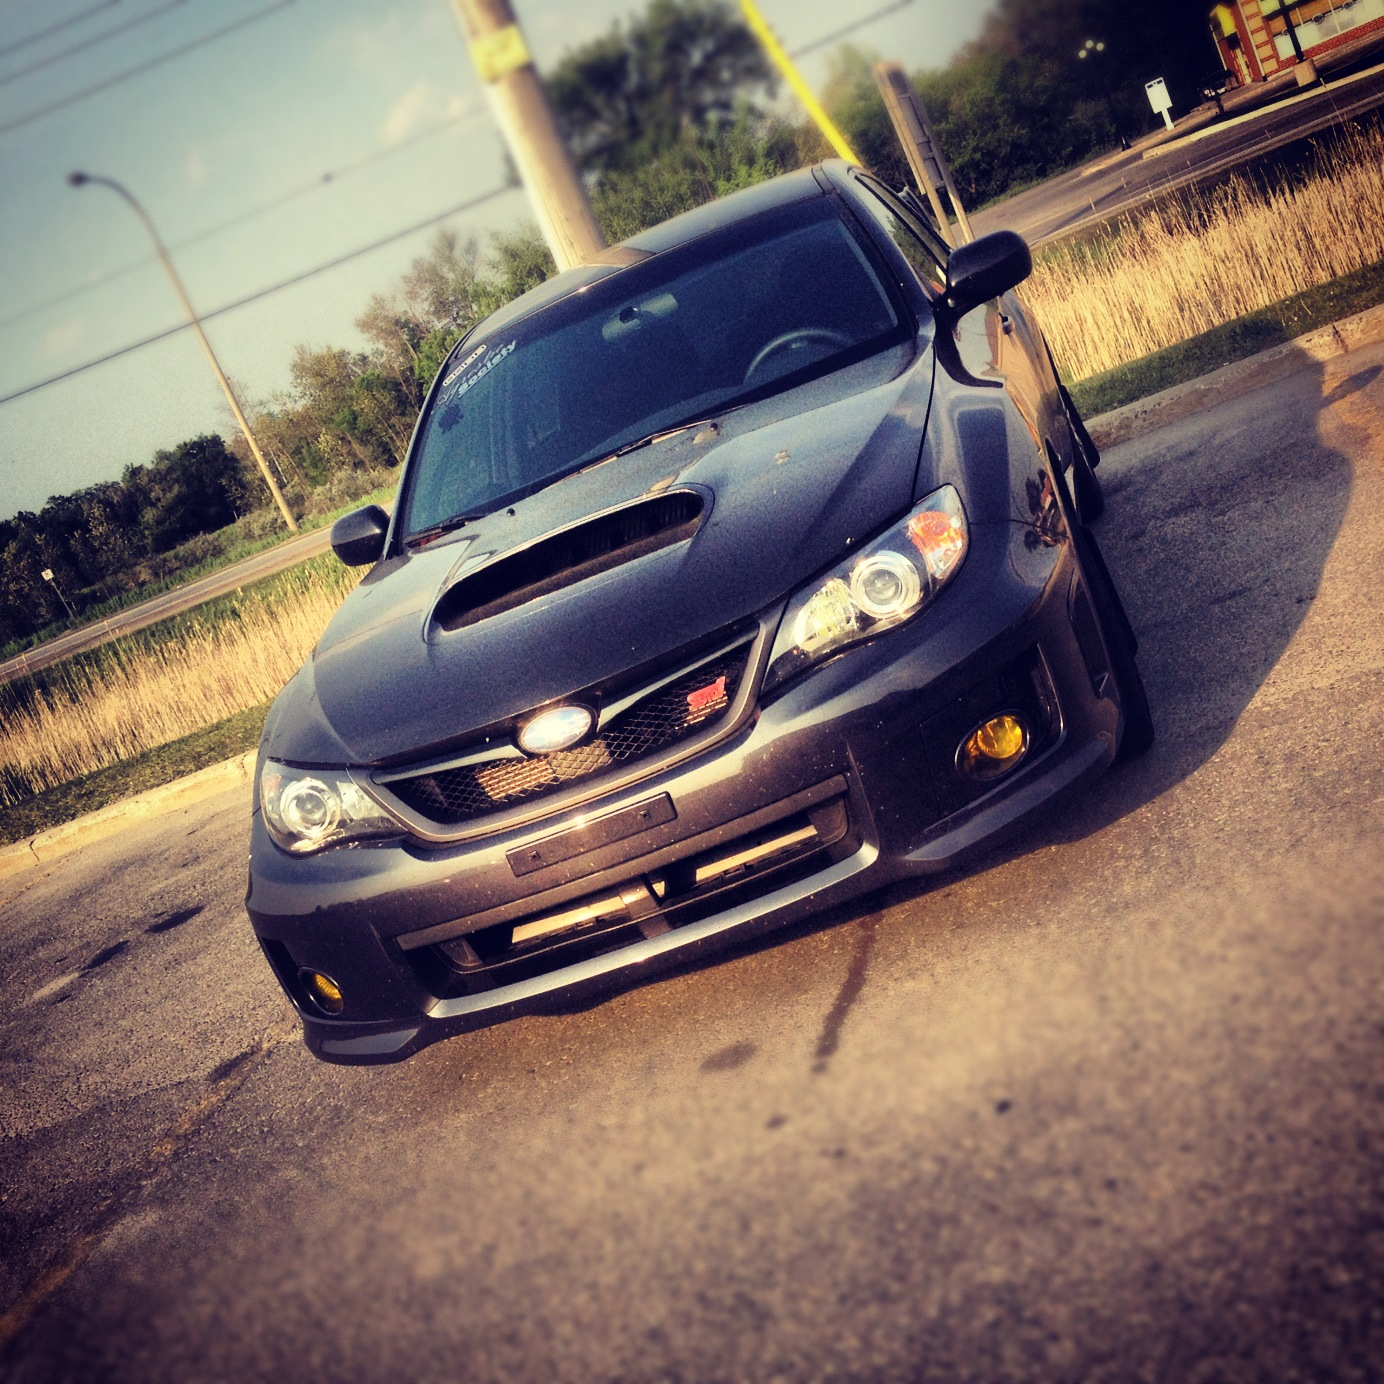 Post the BEST pic of your STi-img_0929-jpg